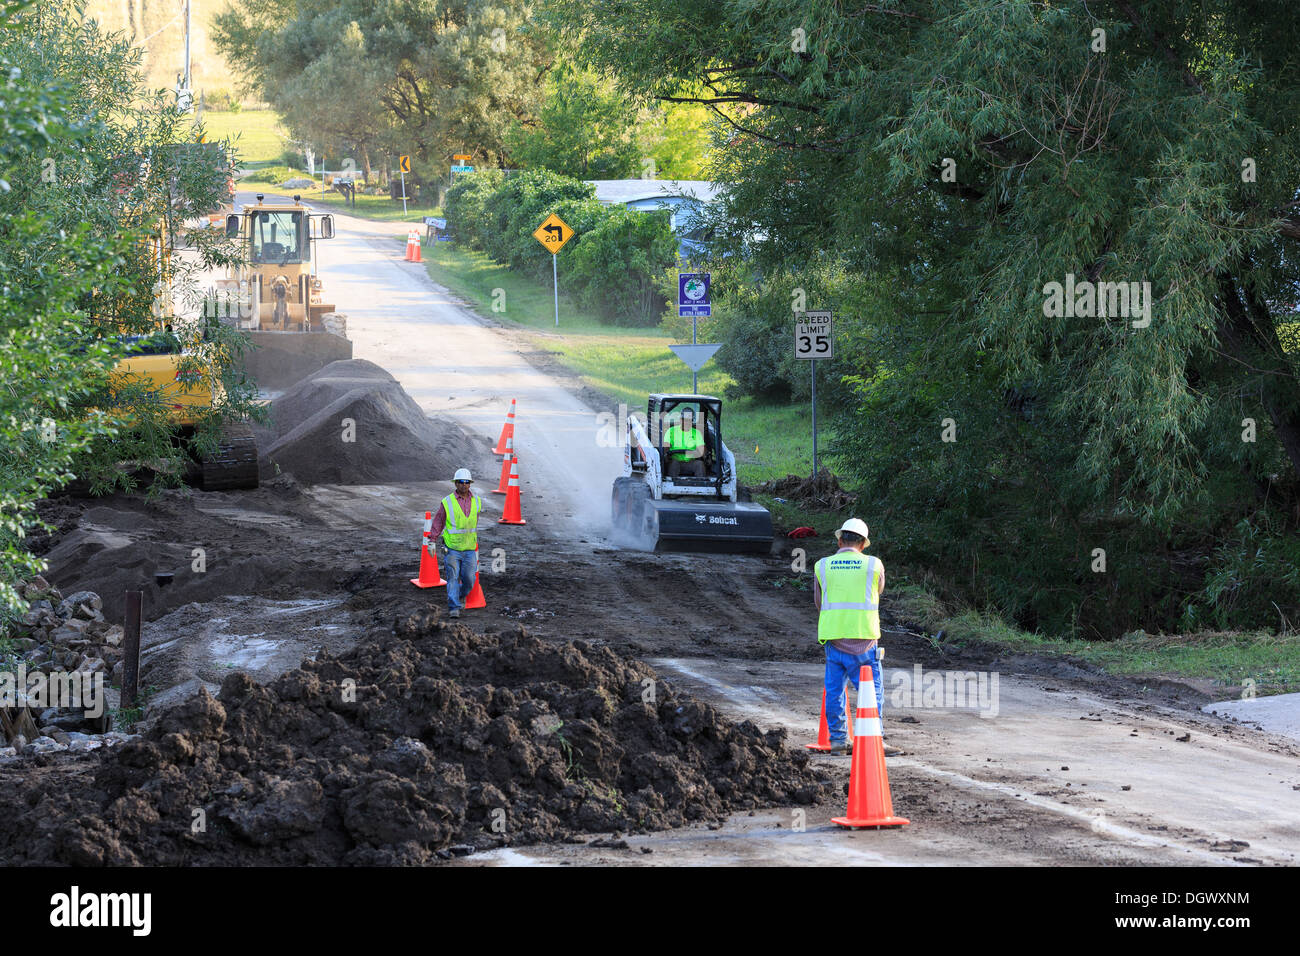 A work crew repairs a road damaged by flood water in Arvada, Colorado - Stock Image